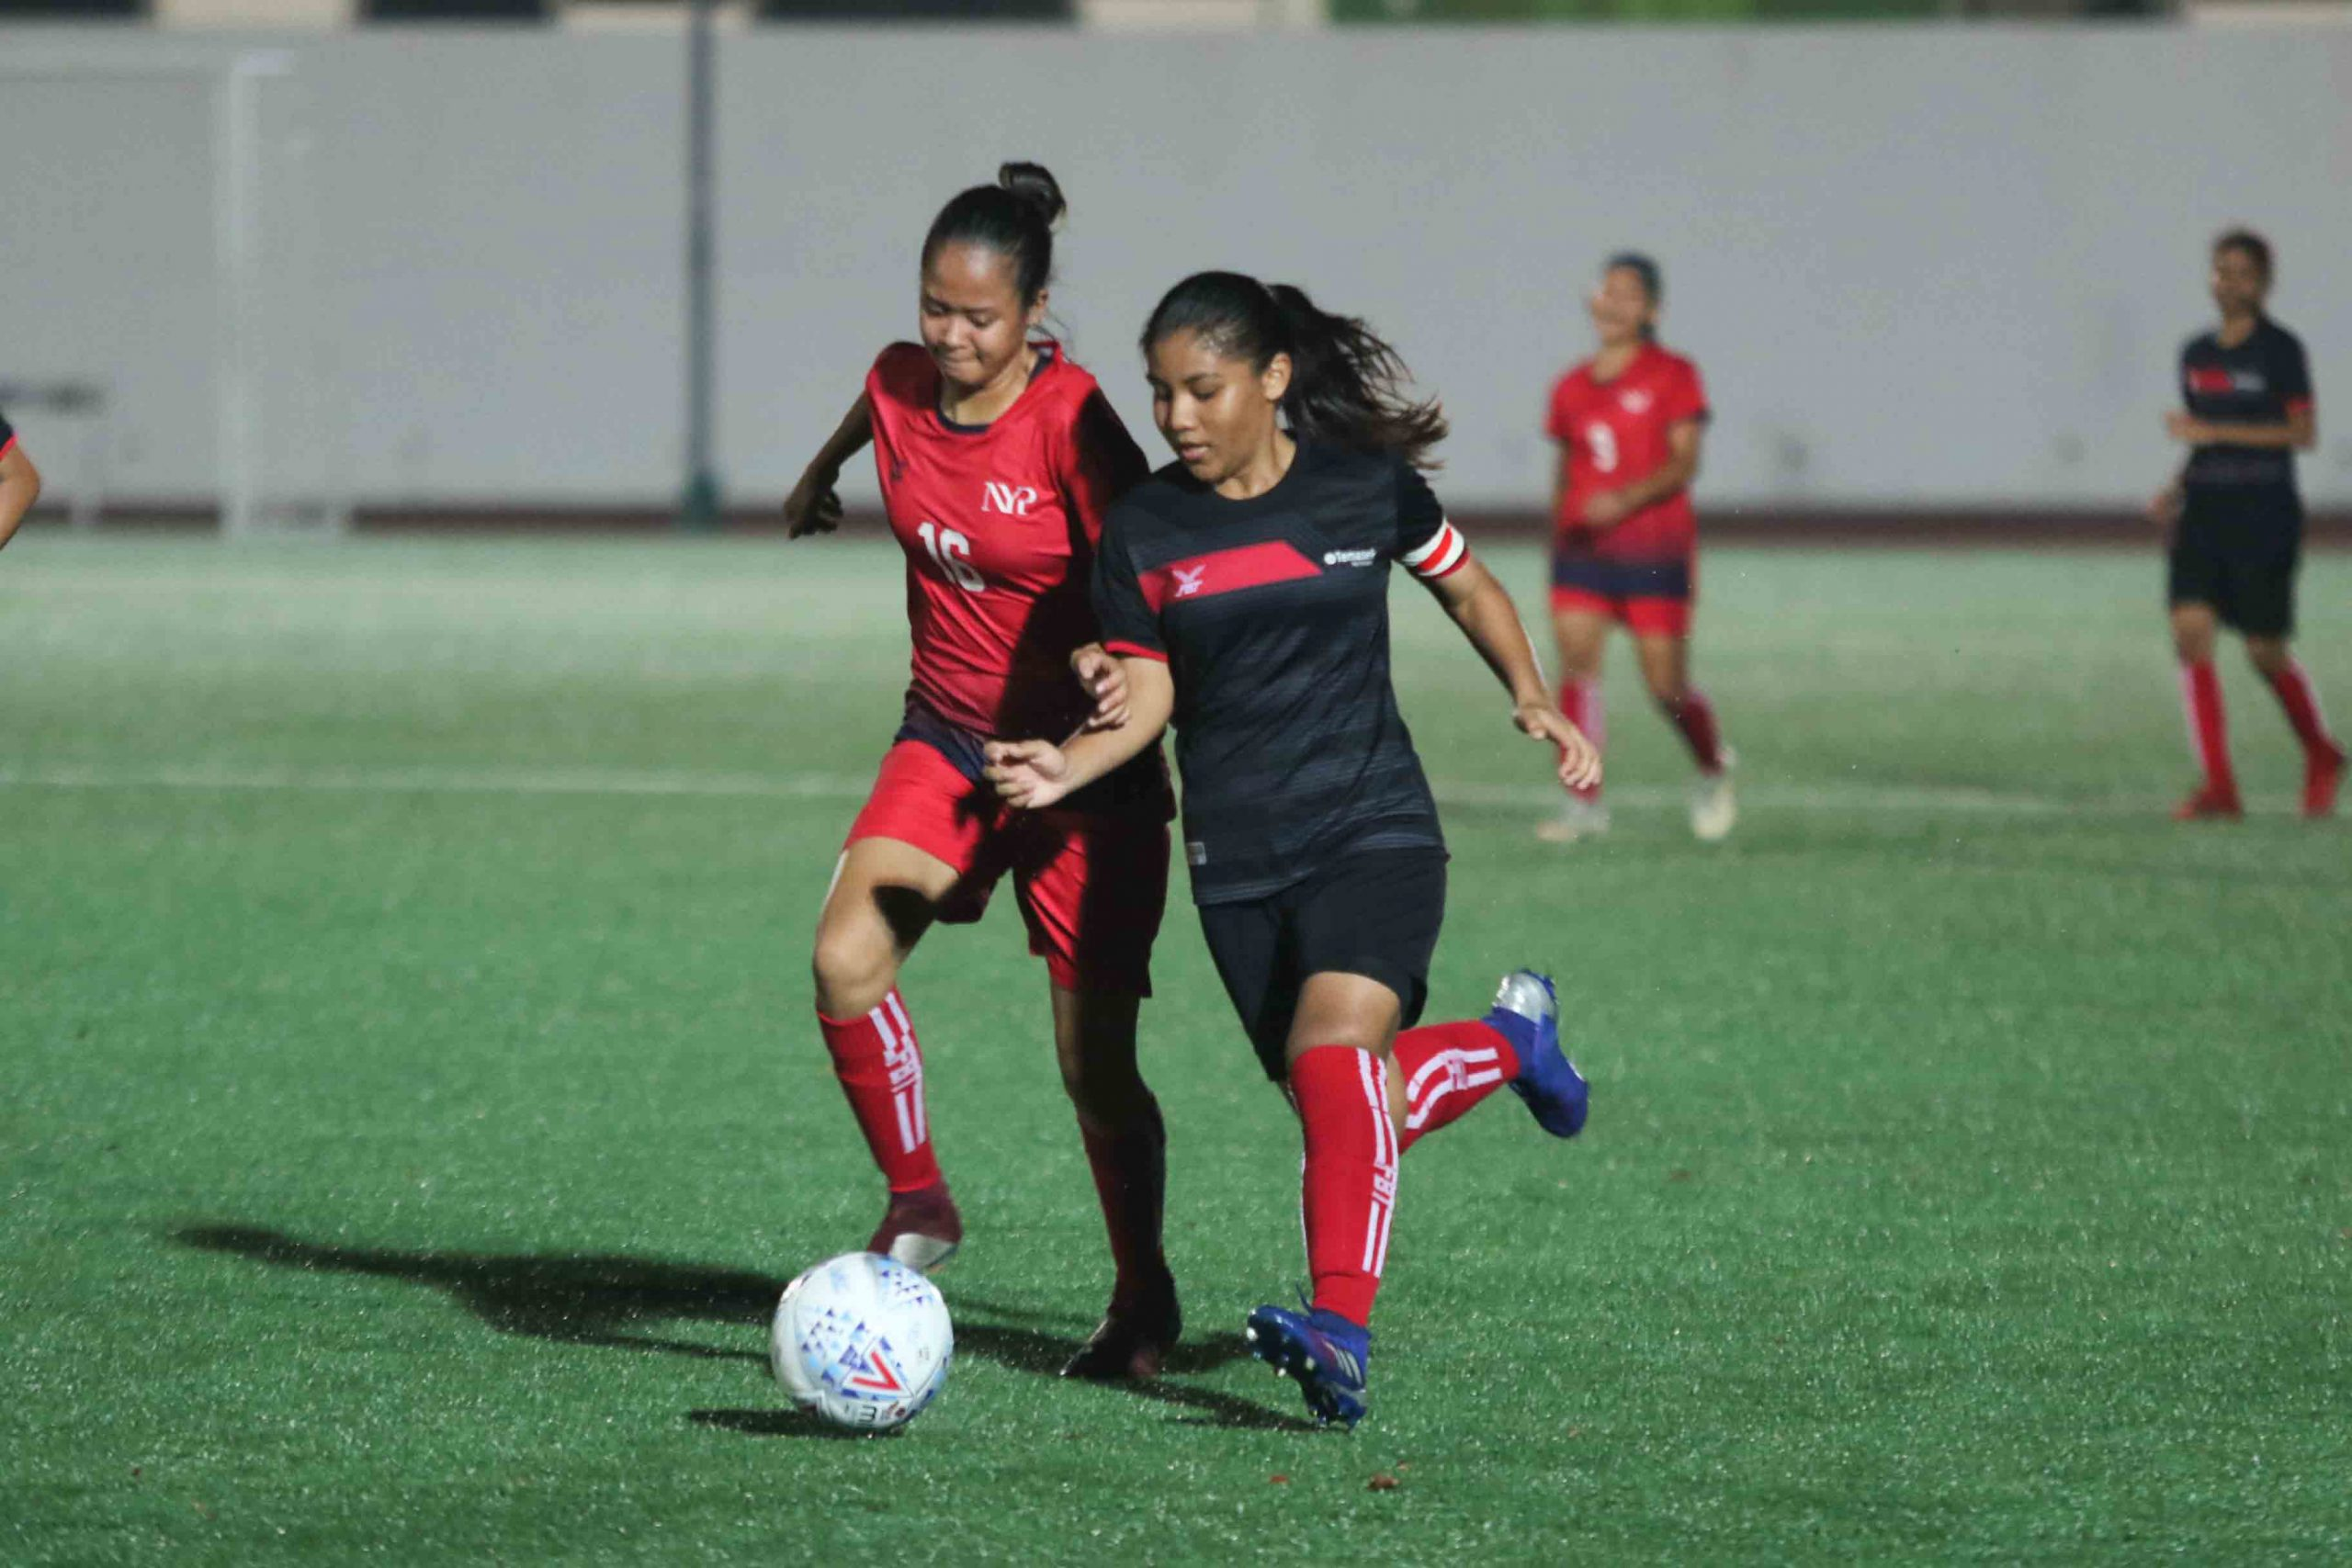 TP captain Mira Ruzana (#8) dribbles the ball down the field chased by Erissa Qistina (NYP #16). (Photo 5 © Clara Lau/Red Sports)